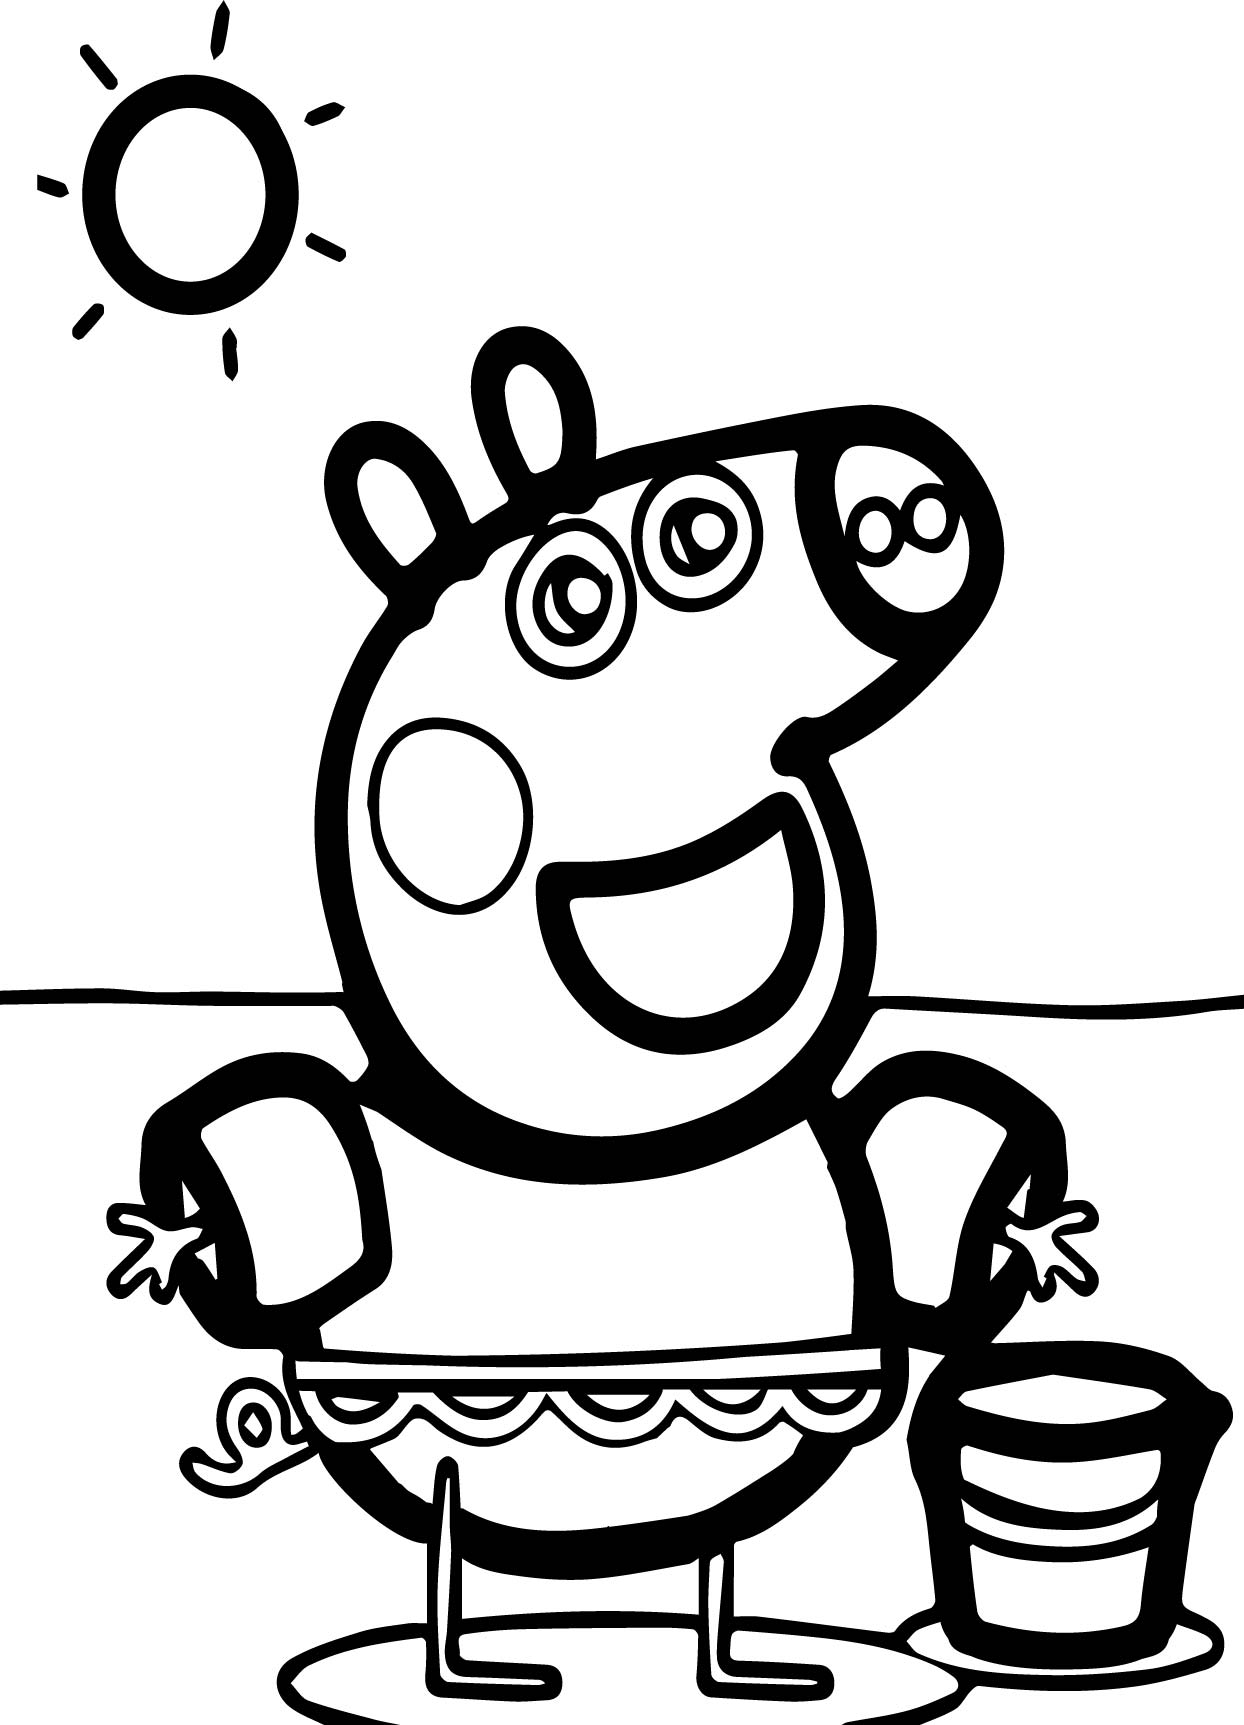 peppa pig sun beach coloring page wecoloringpage